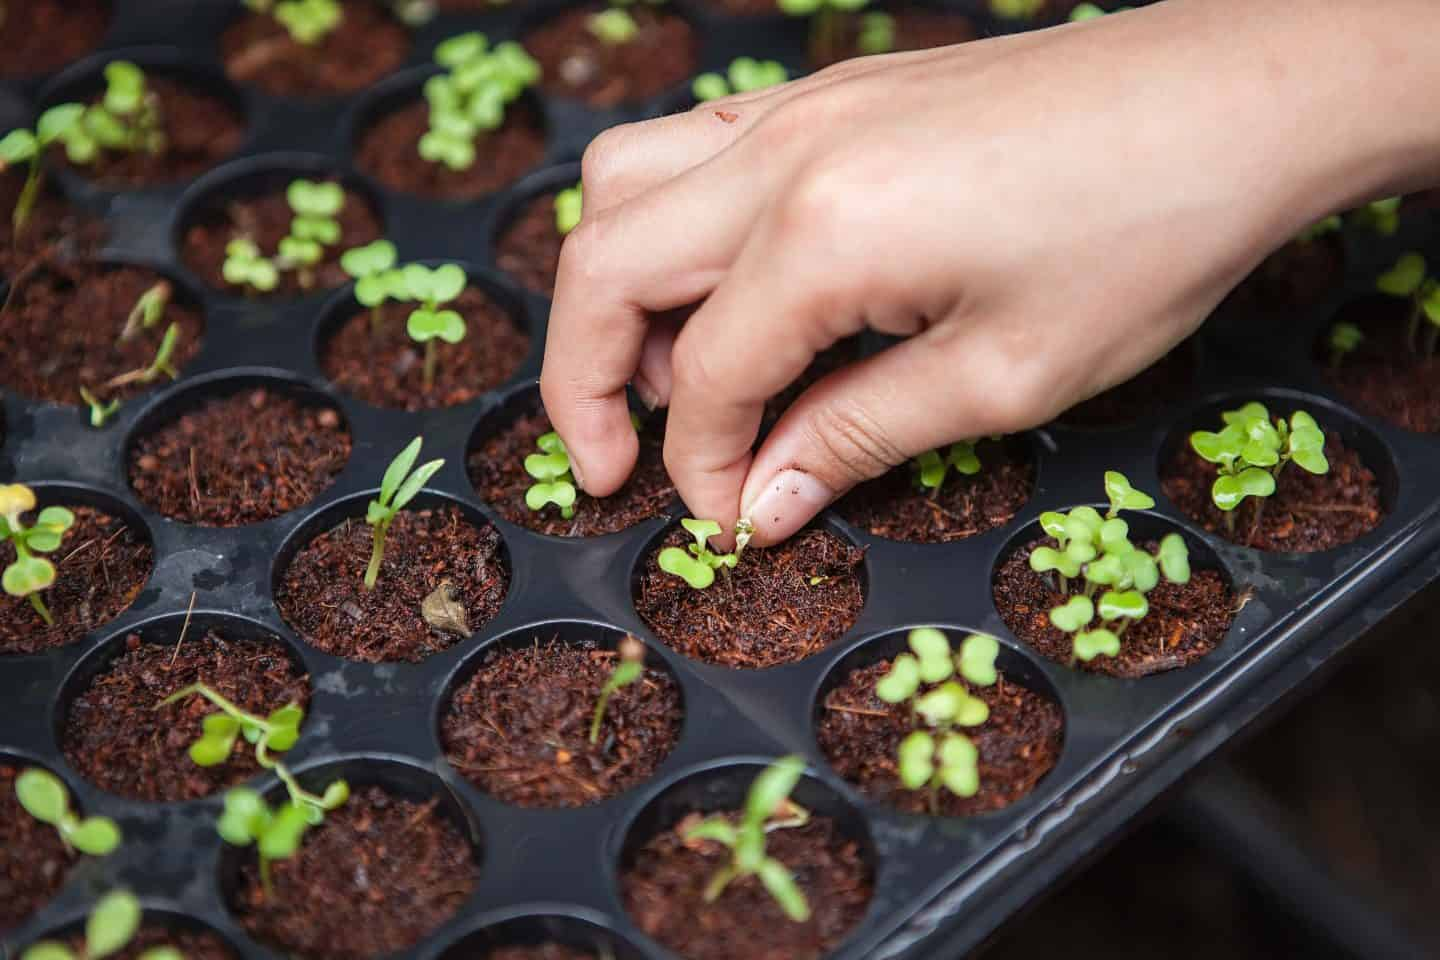 sustainable garden tips - planting seedlings